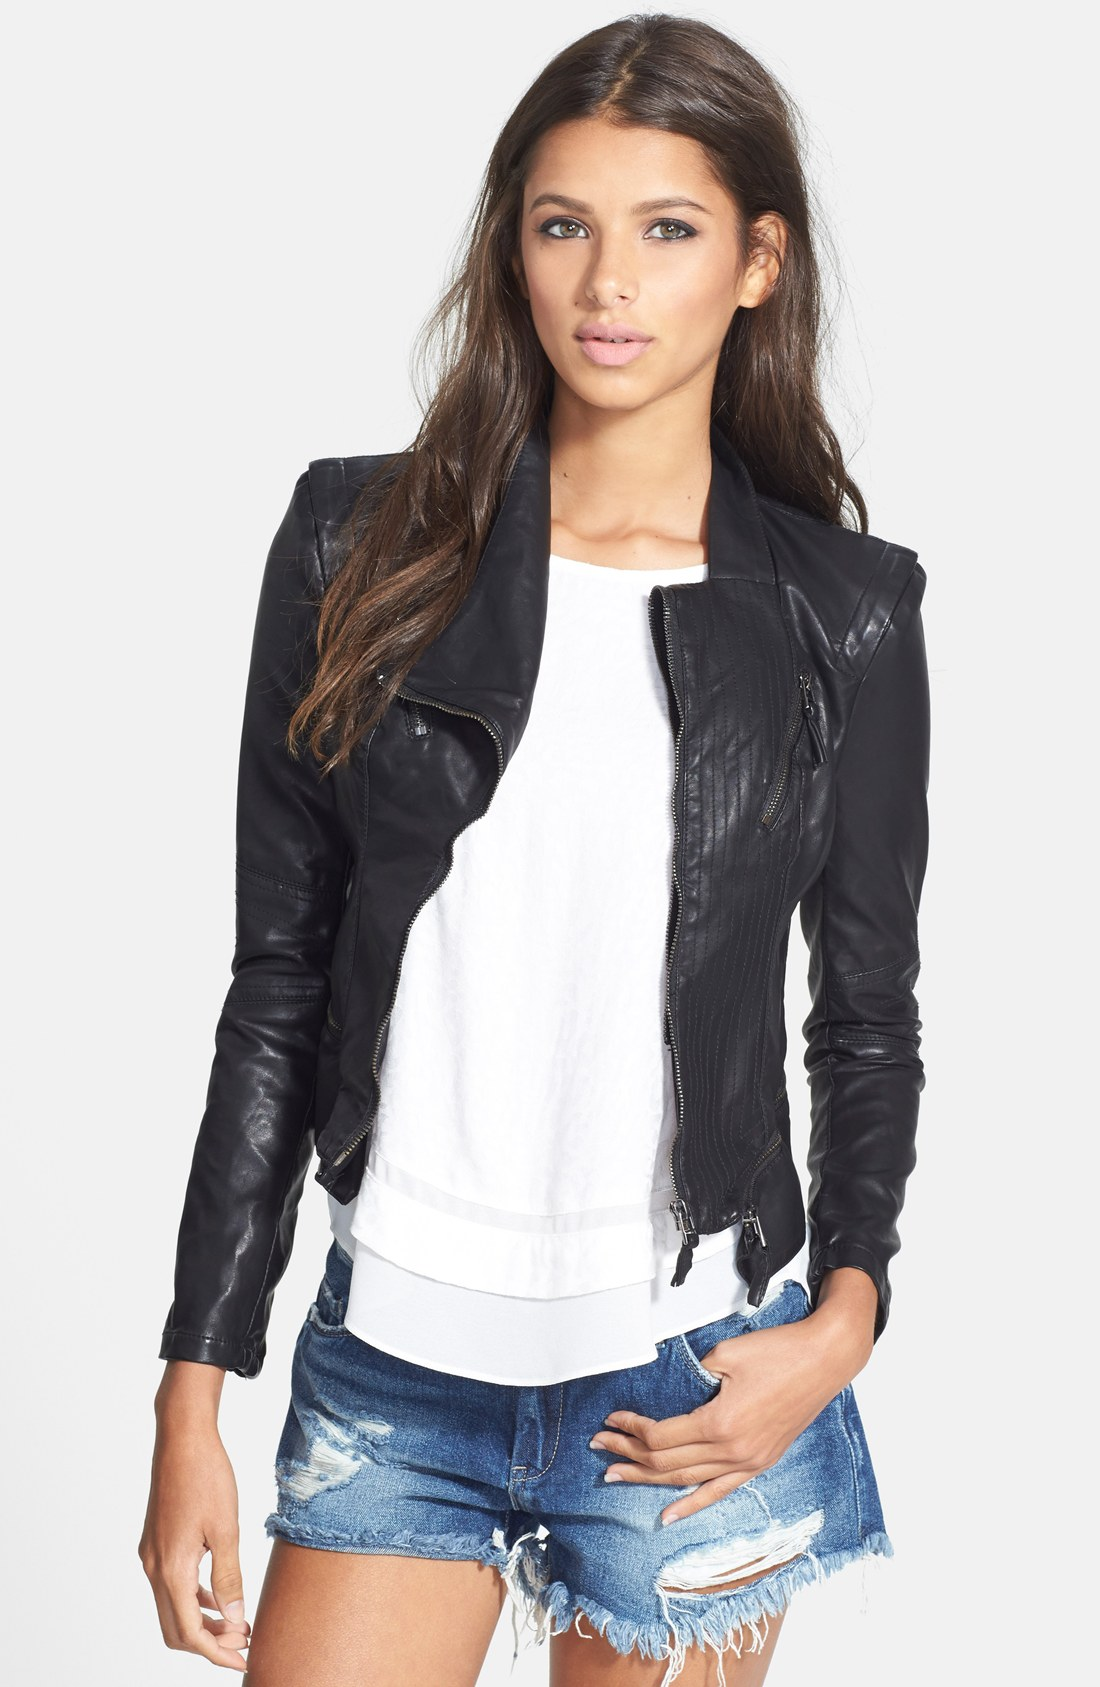 Wear faux leather jacket and look stylish